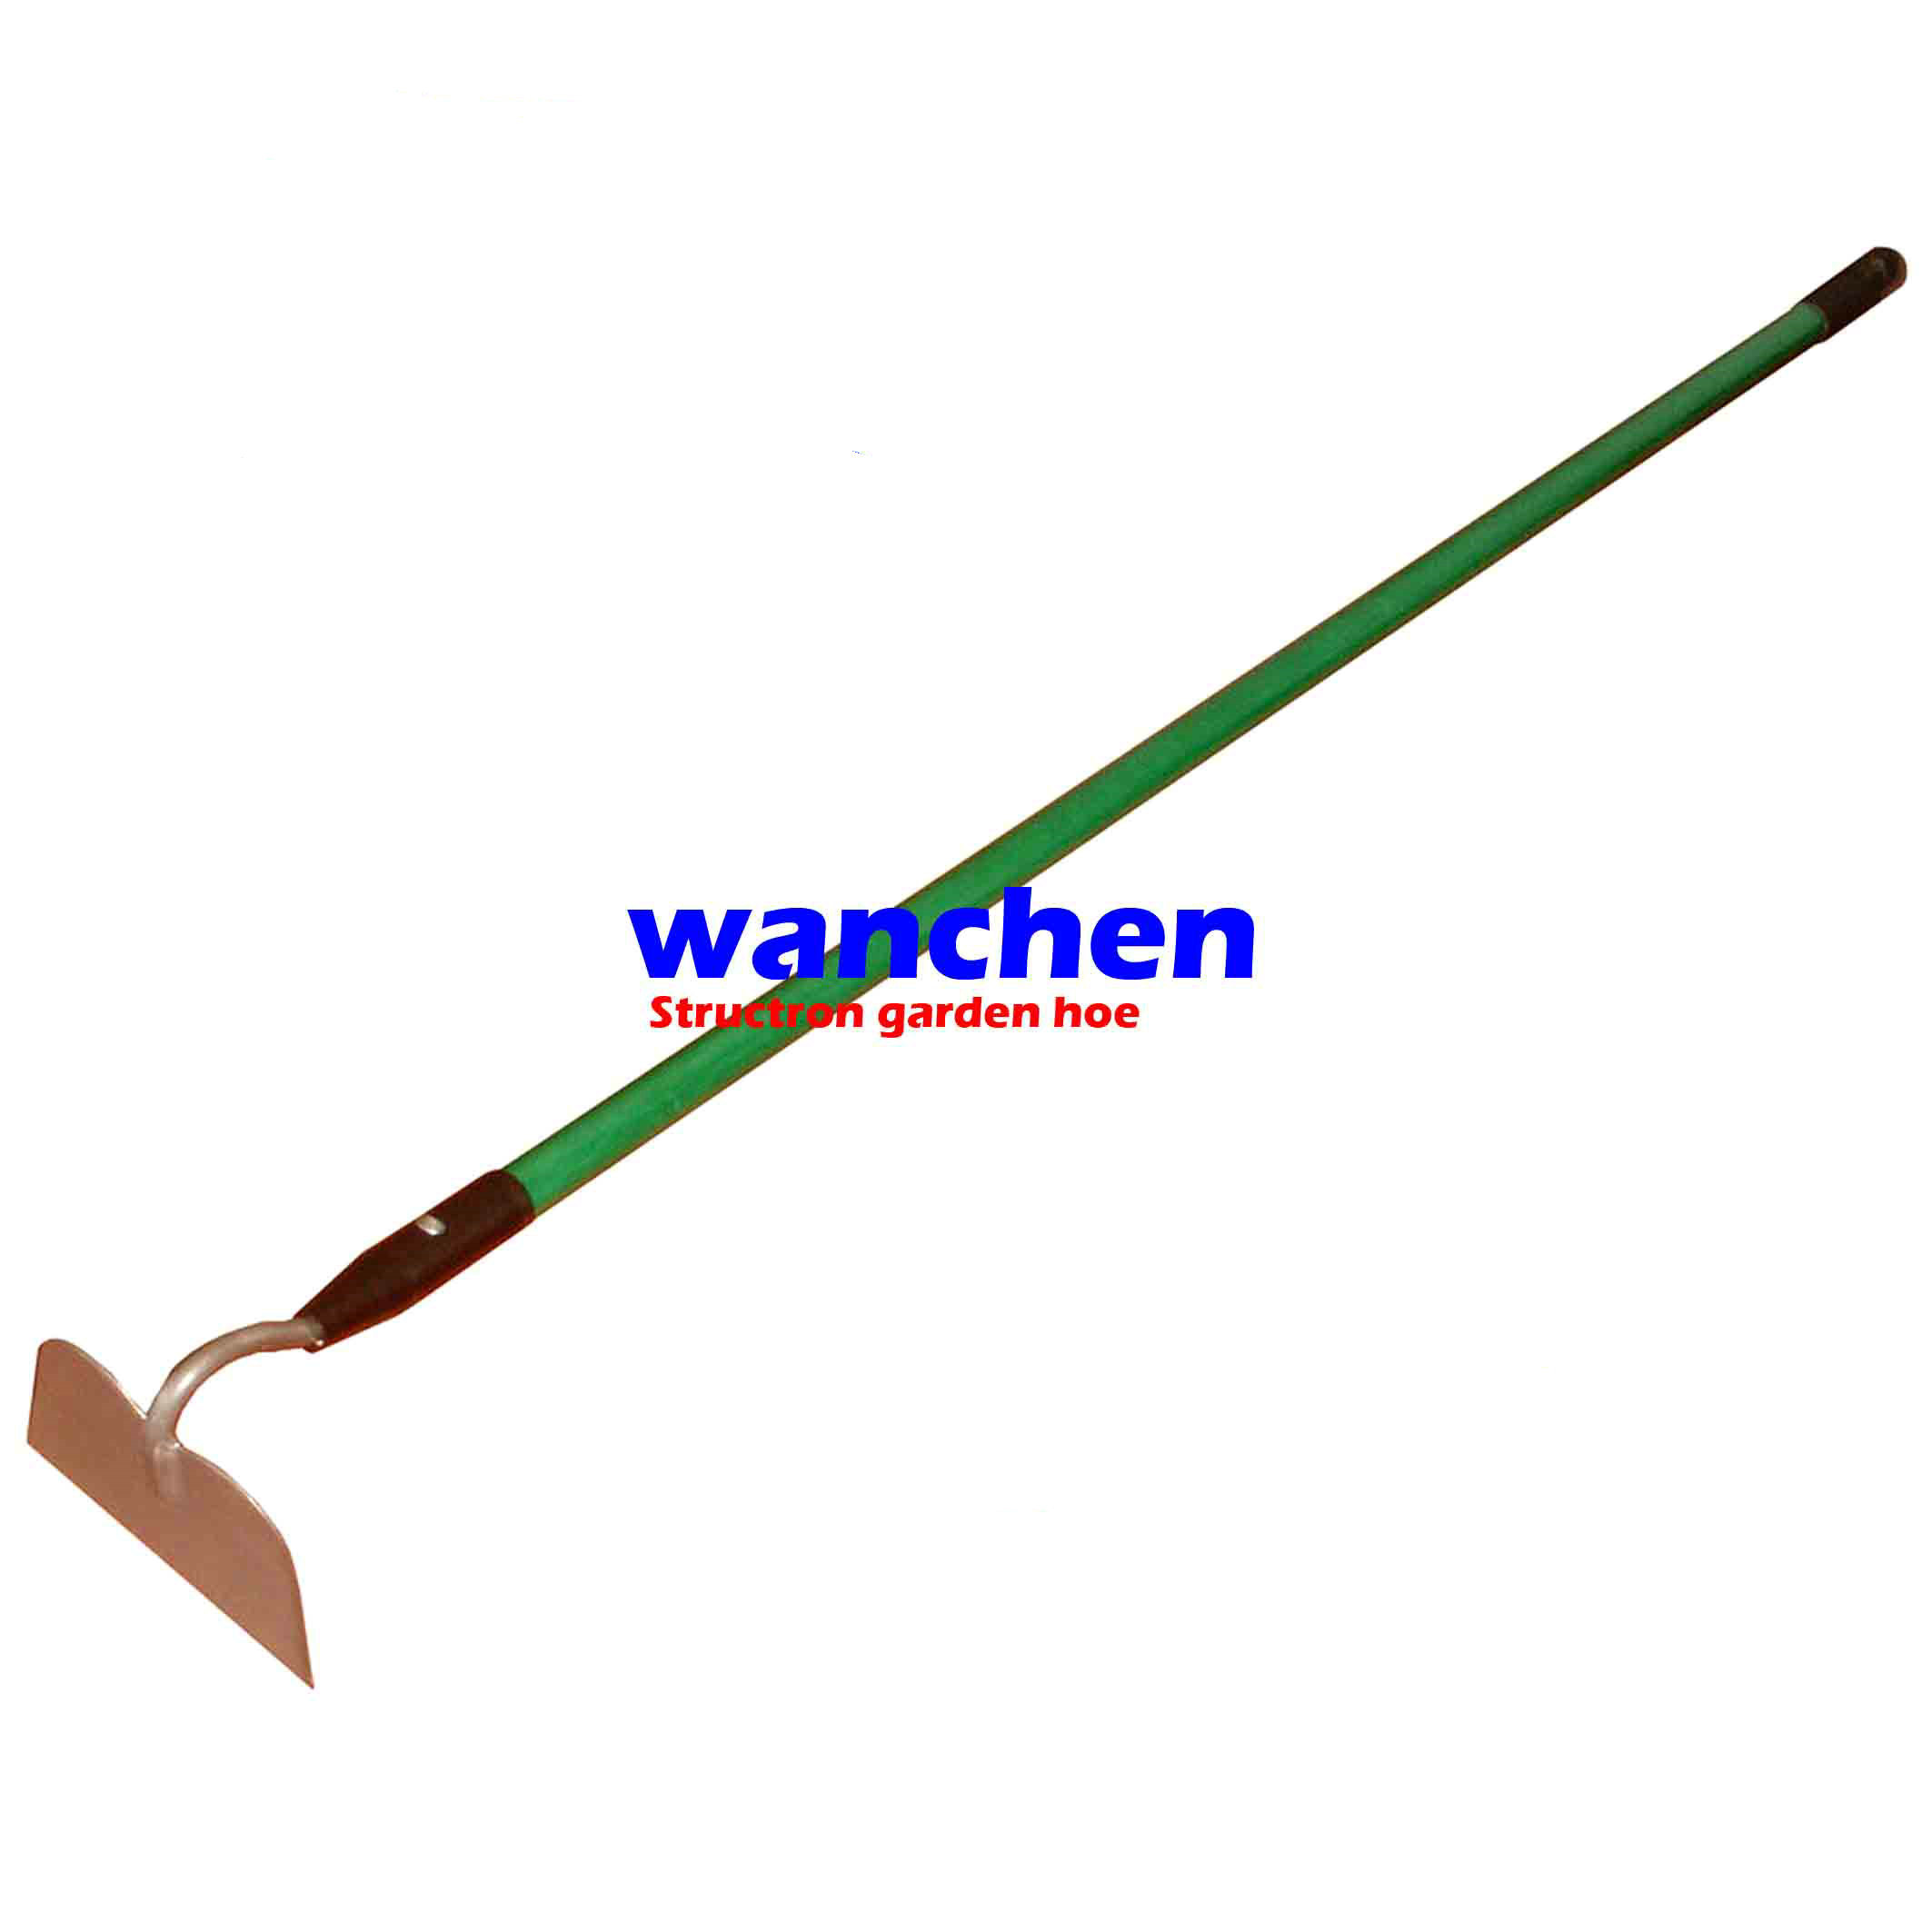 China struction garden hoe china hoe steel hoe for Picture of a garden hoe